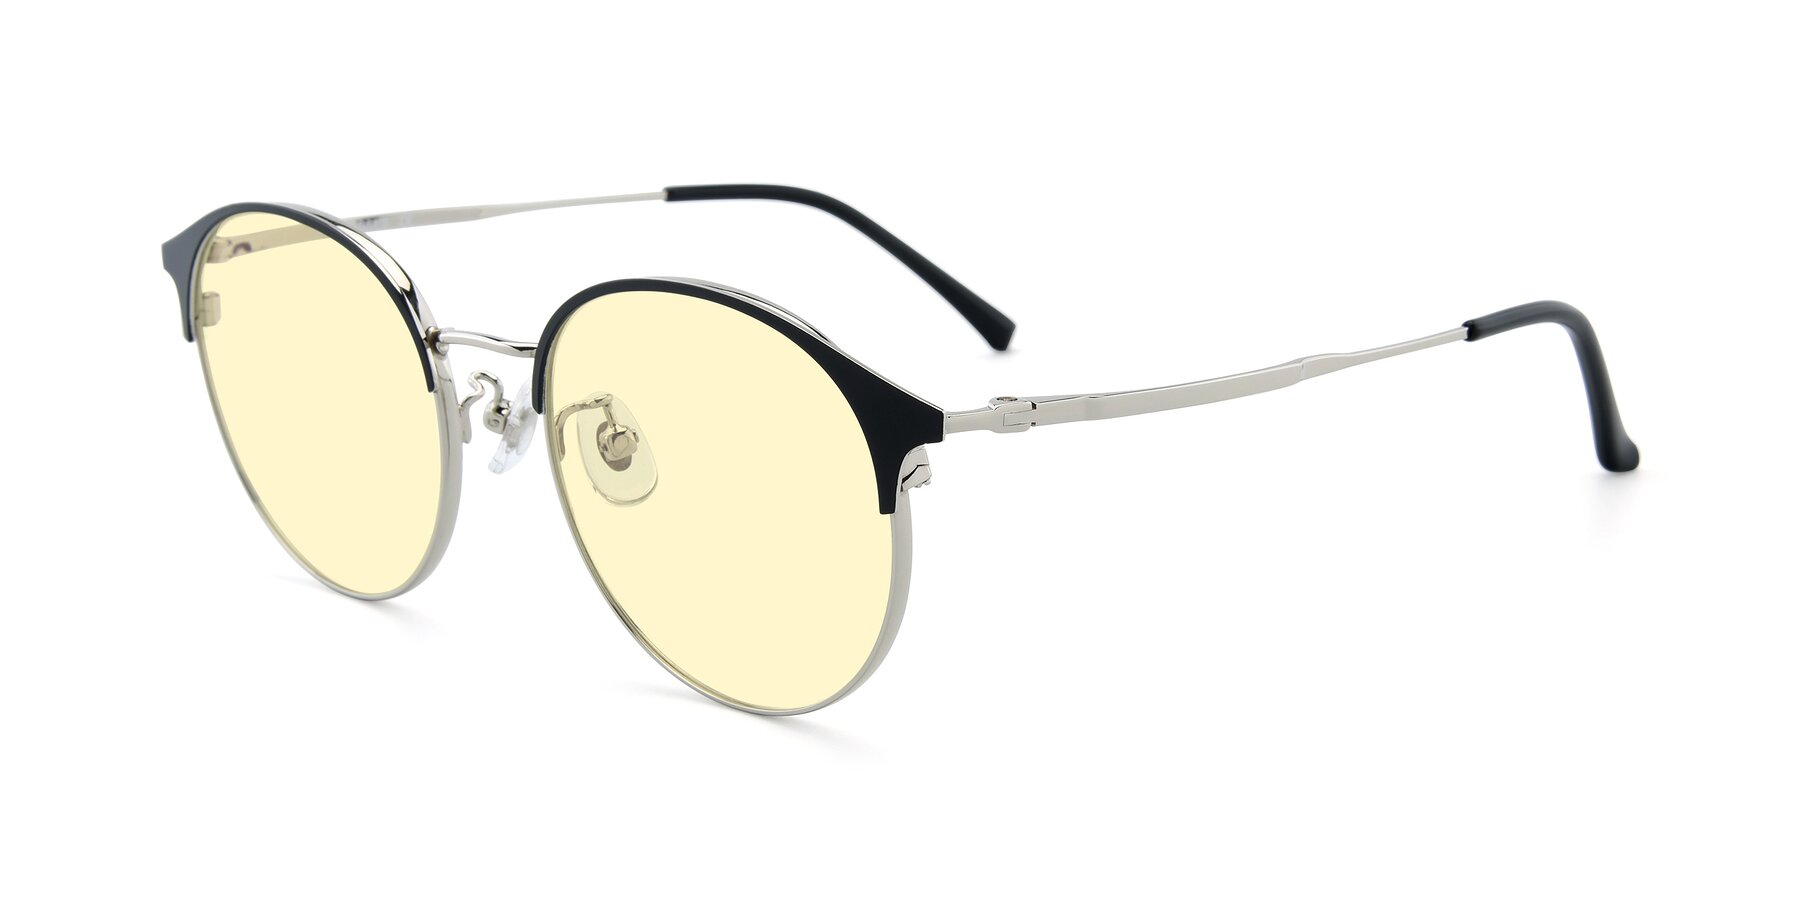 Angle of XC-8031 in Black-Silver with Light Yellow Tinted Lenses